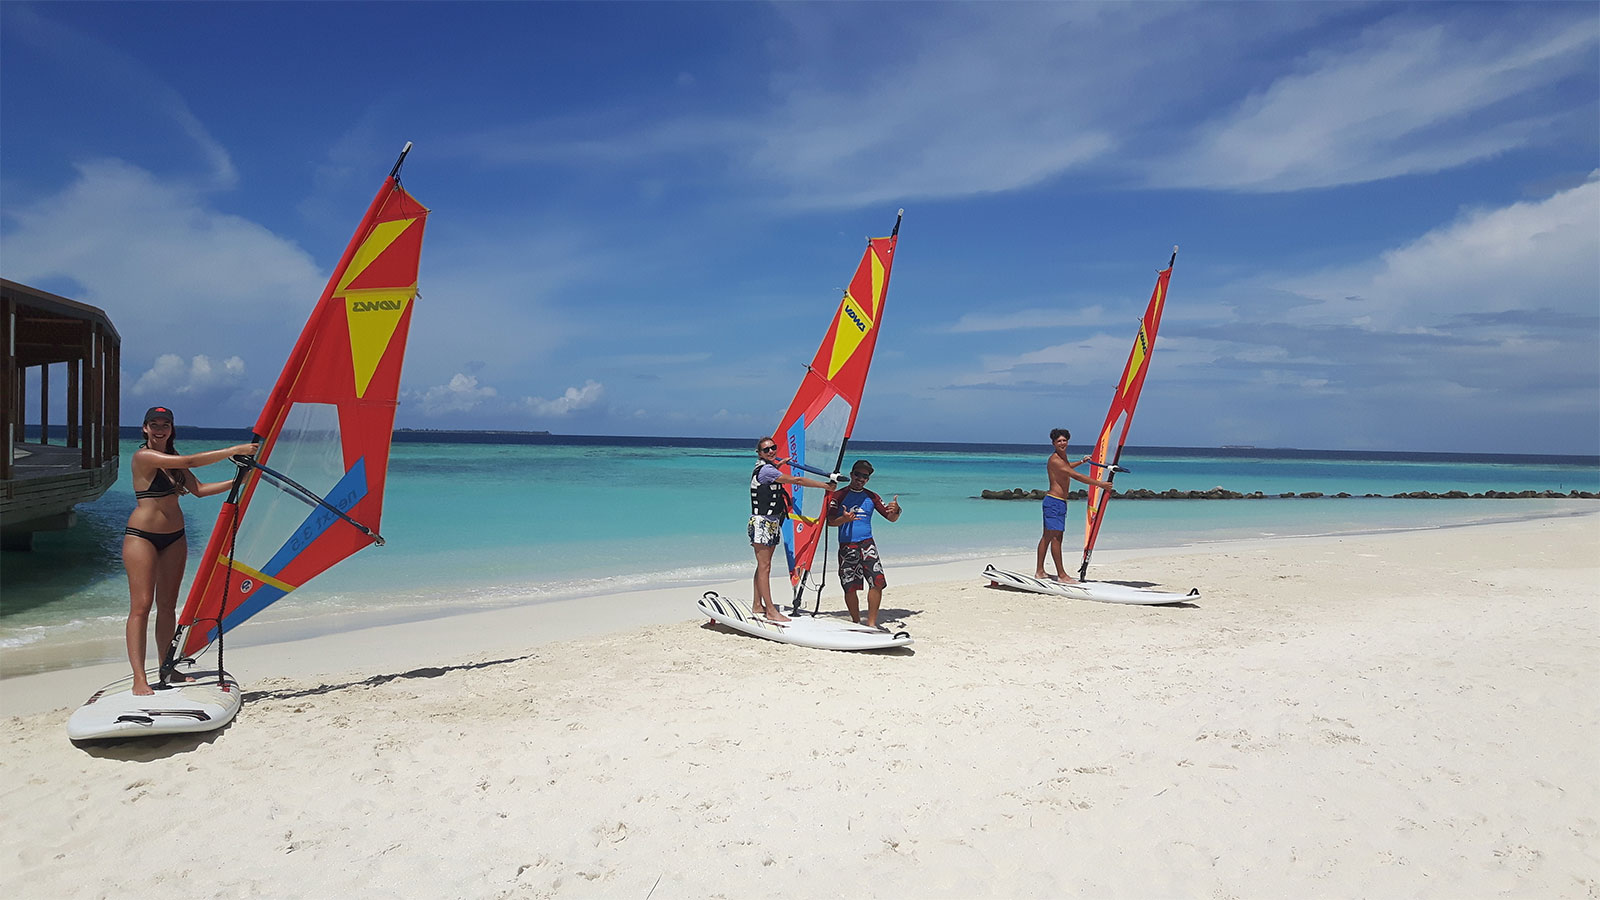 Windsurf lessons Hurawalhi Maldives